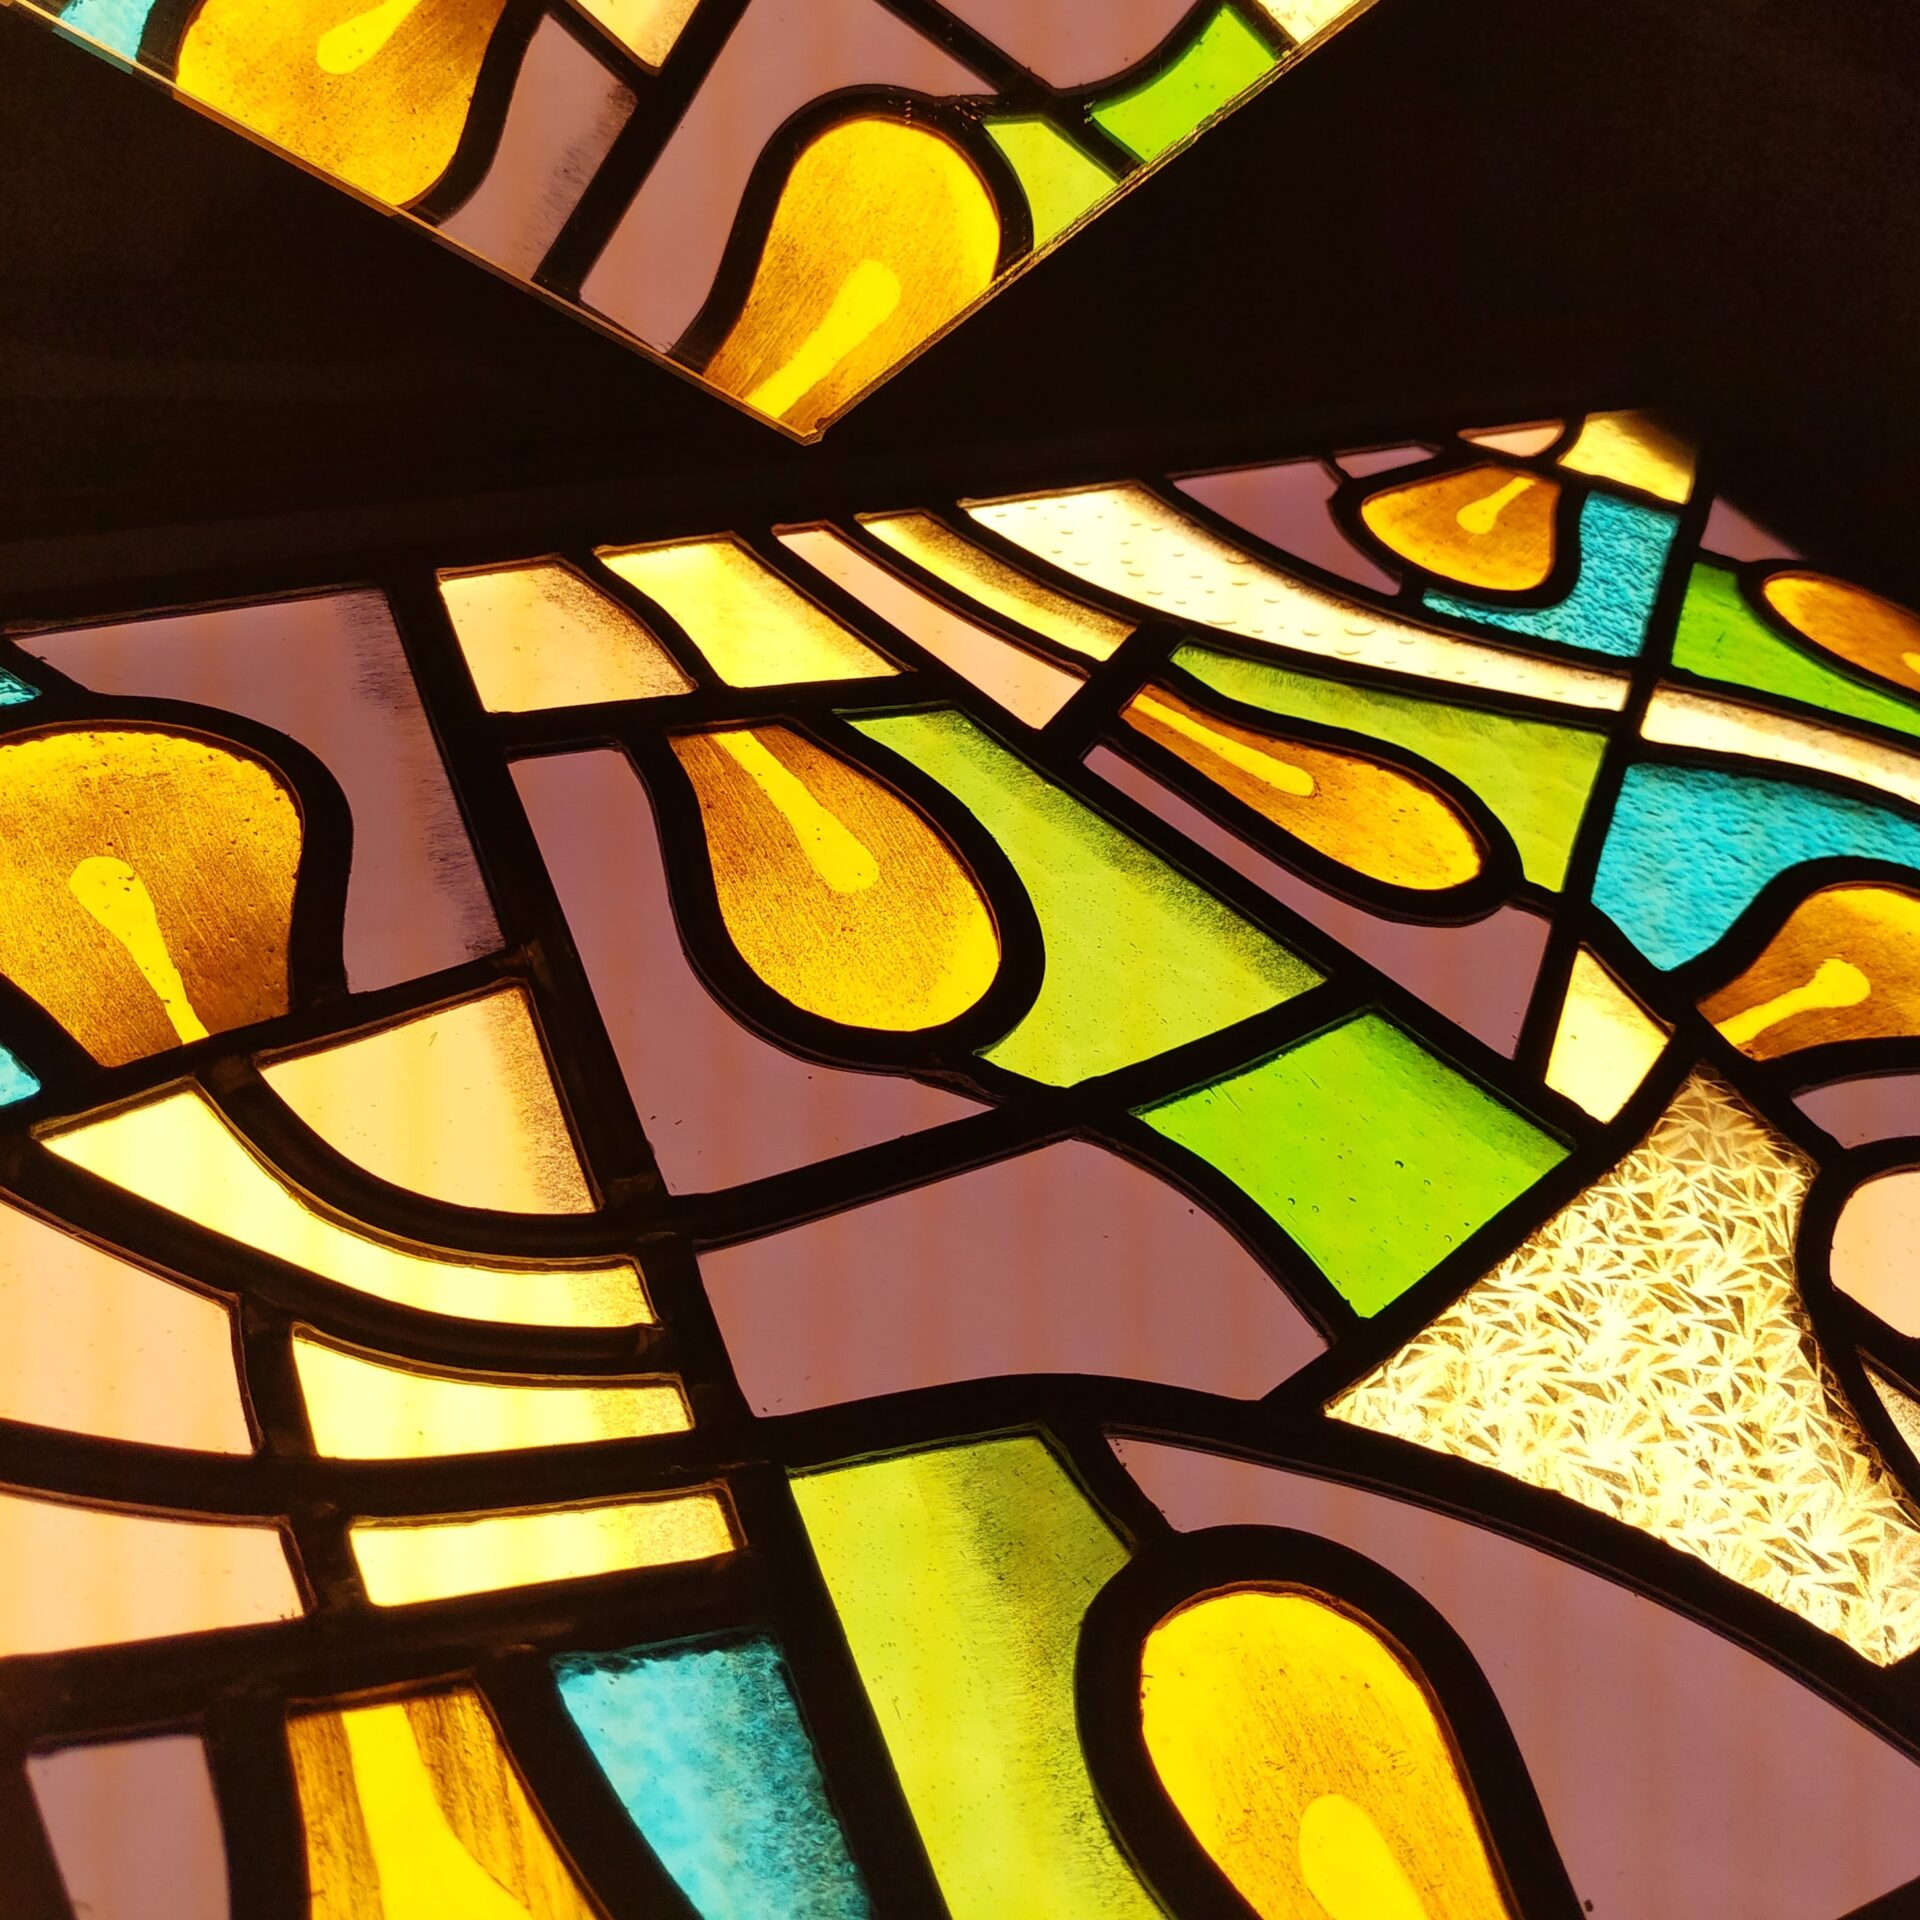 Glas-in-lood vitrail stained glass